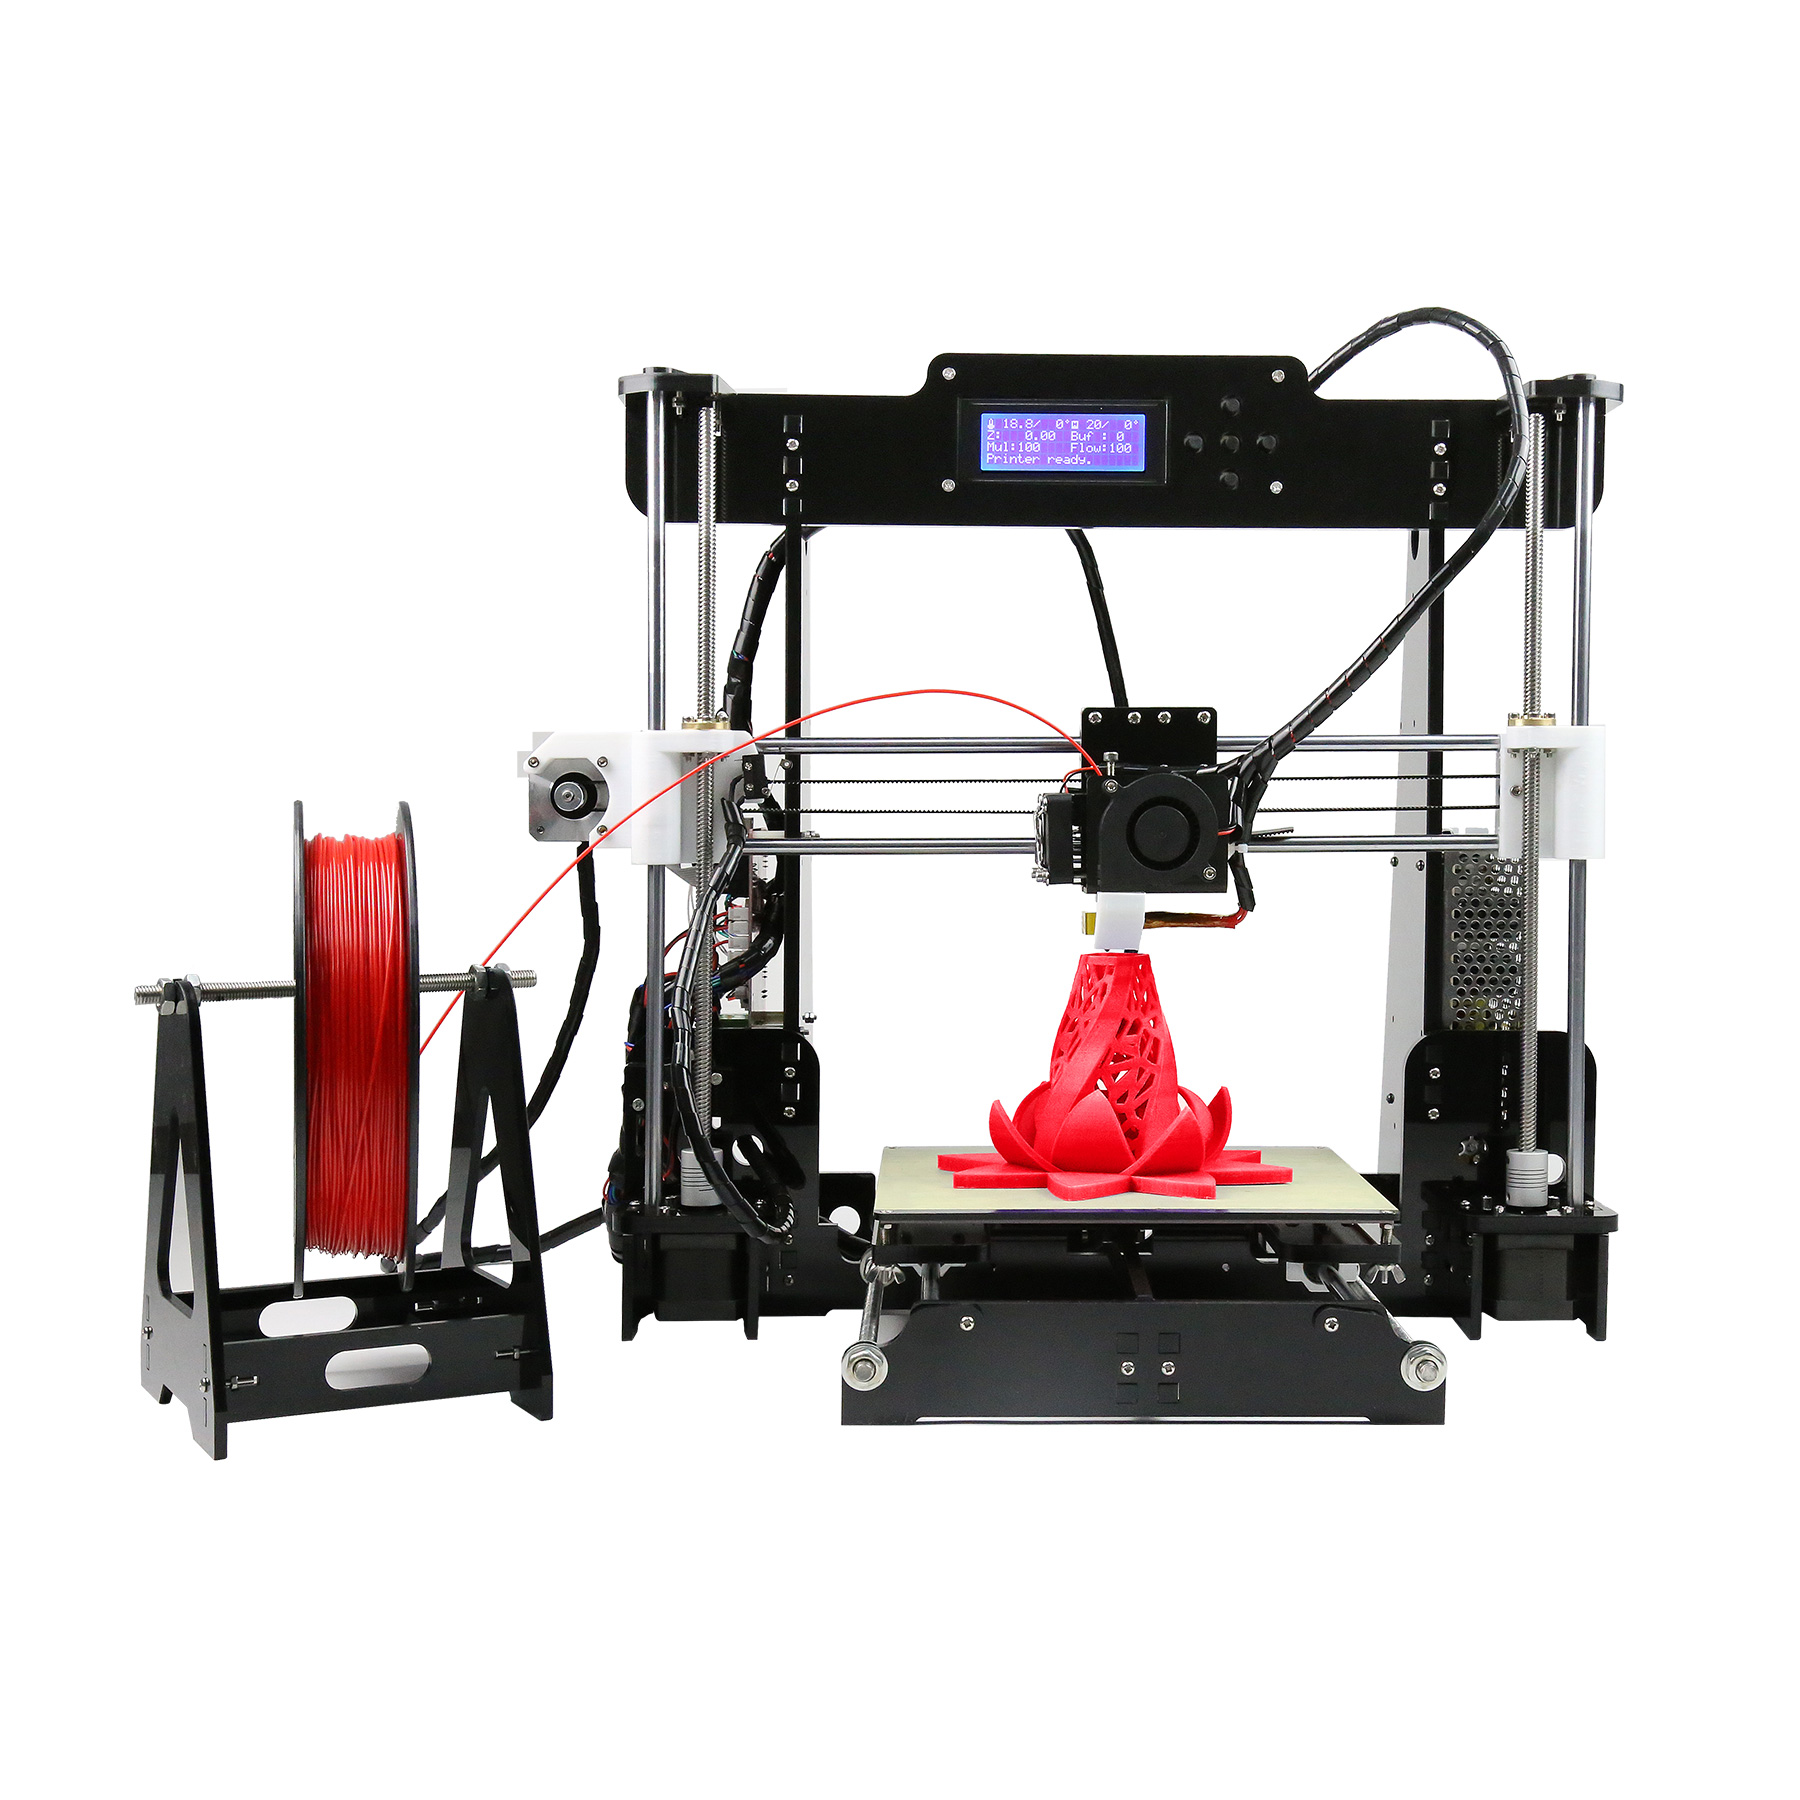 Orion Motor Tech Upgraded Desktop 3D PRINTER with All Metal MK8 Extruder